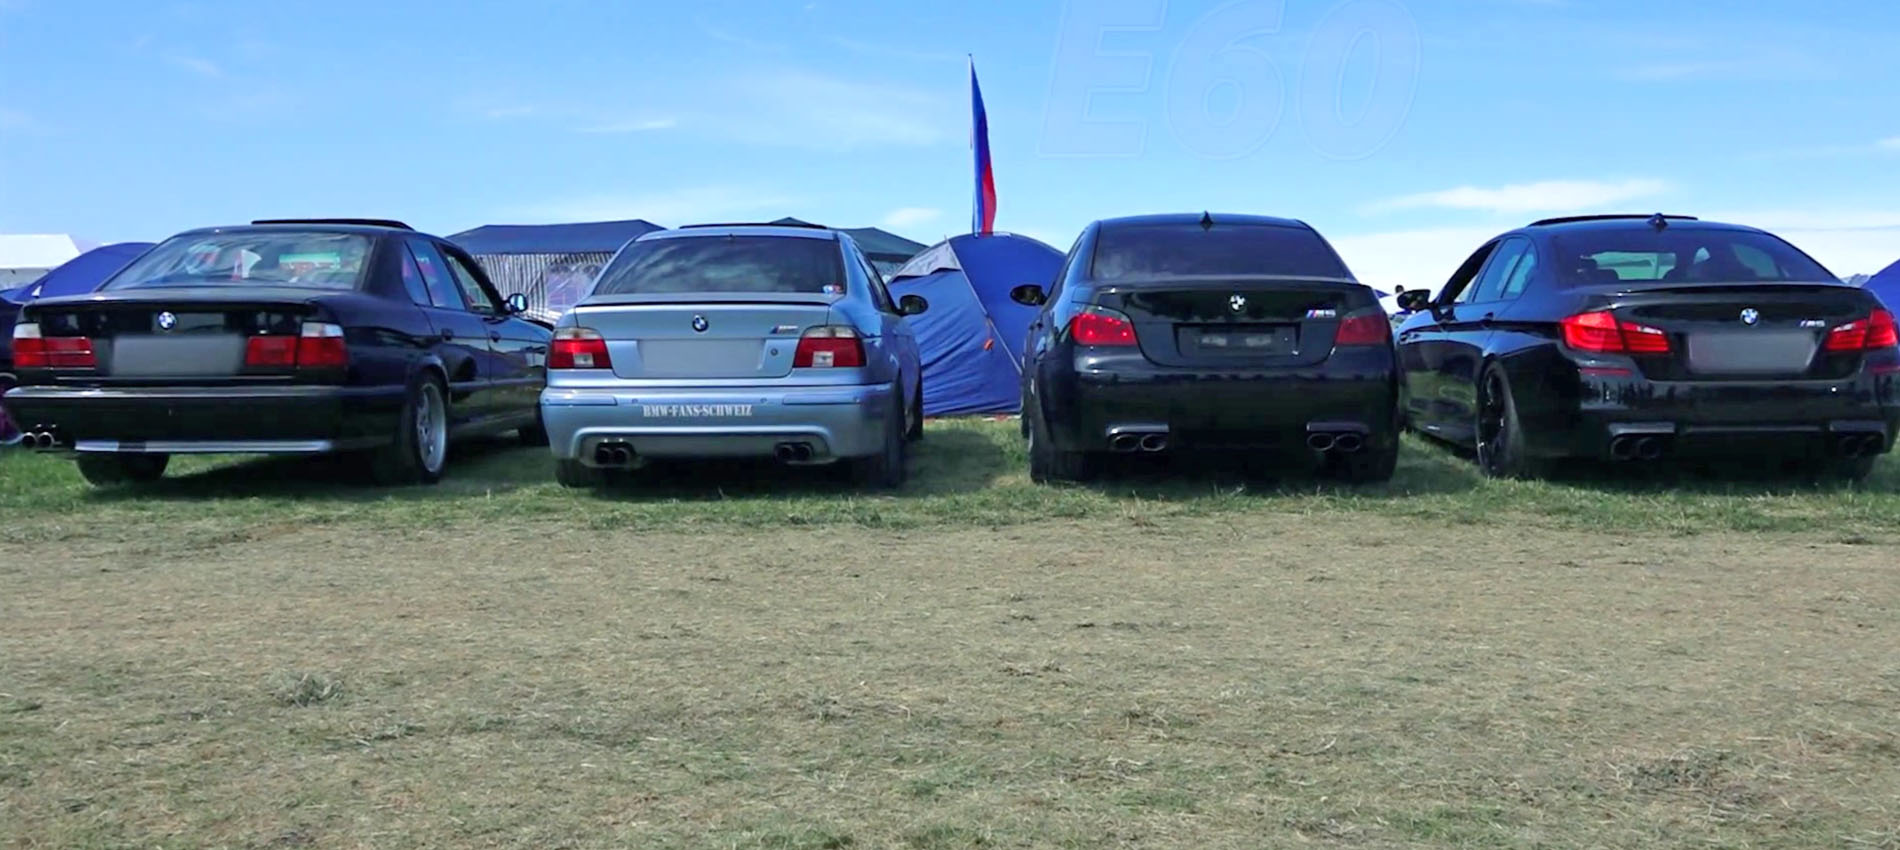 Bmw M5 Exhaust Sound Battle E34 Vs E39 Vs E60 Vs F10